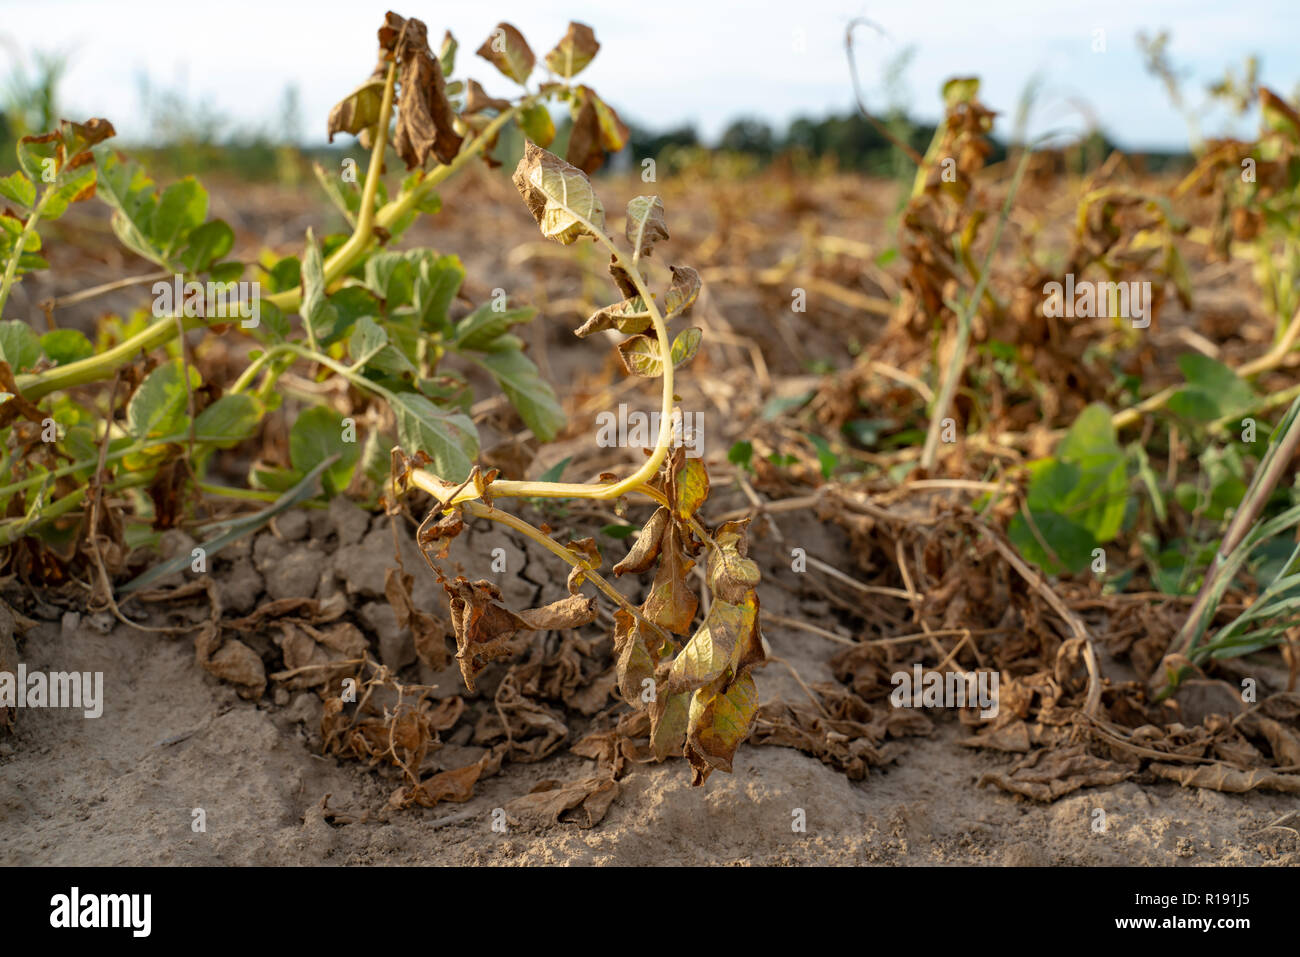 In the hot summer, the dryness destroys the cultivated potatoes in Soest, North Rhine Westphalia, Germany. The plants are dried up in the rows on the  - Stock Image